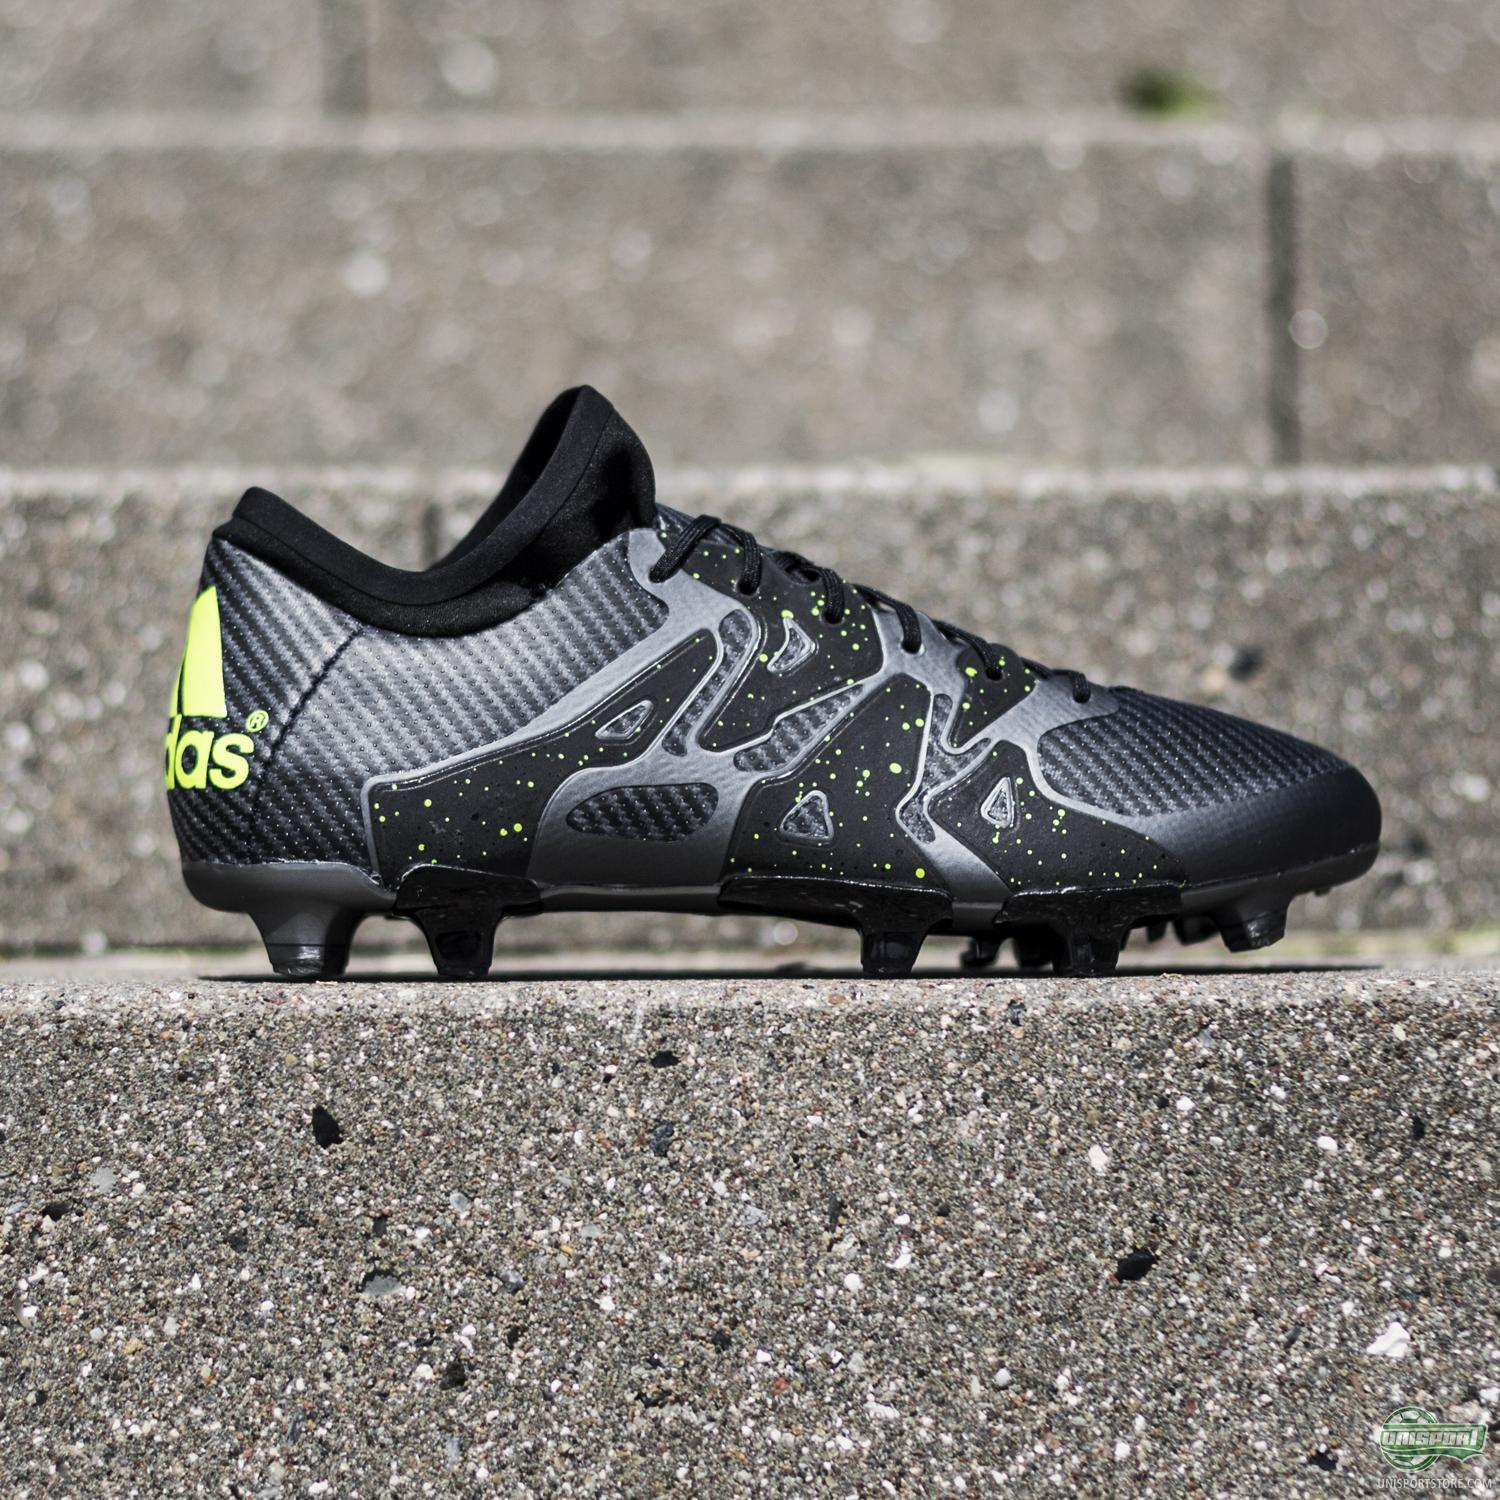 quality design ee670 94d6f adidas X15.1 - blackout class combined with reflective flair